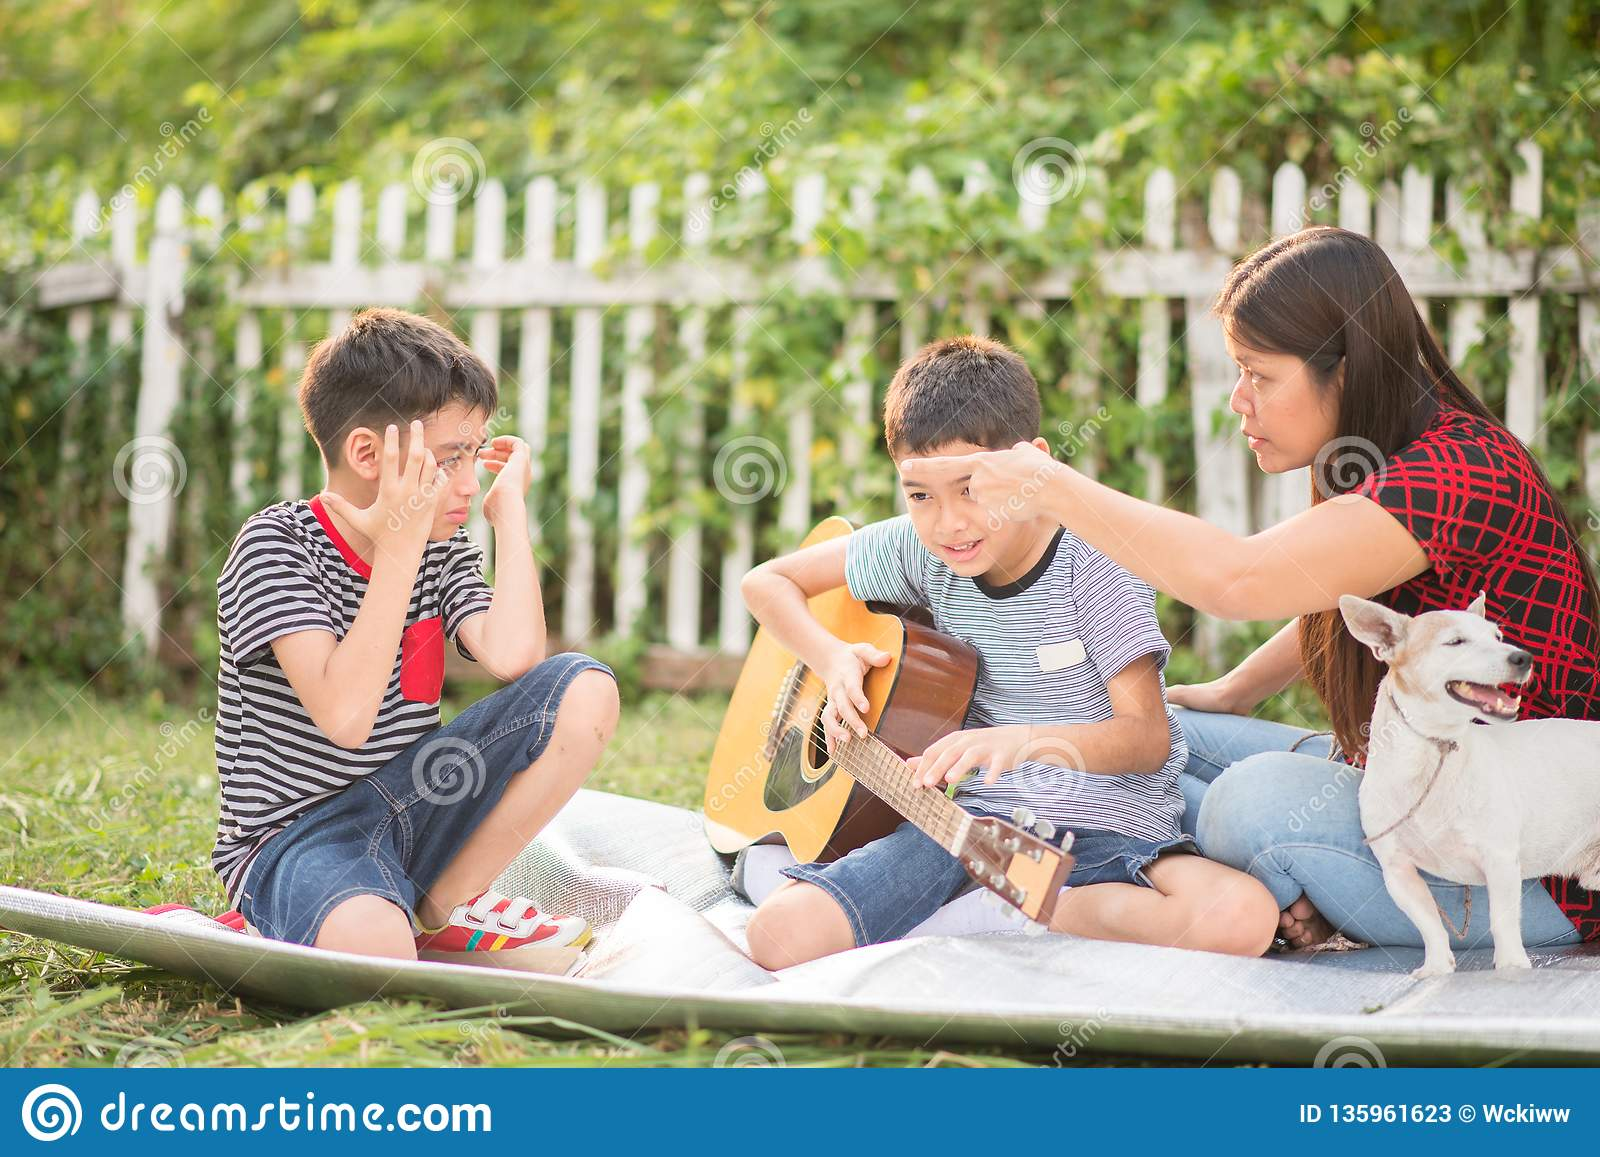 Single mom and sons play guitar together in the park